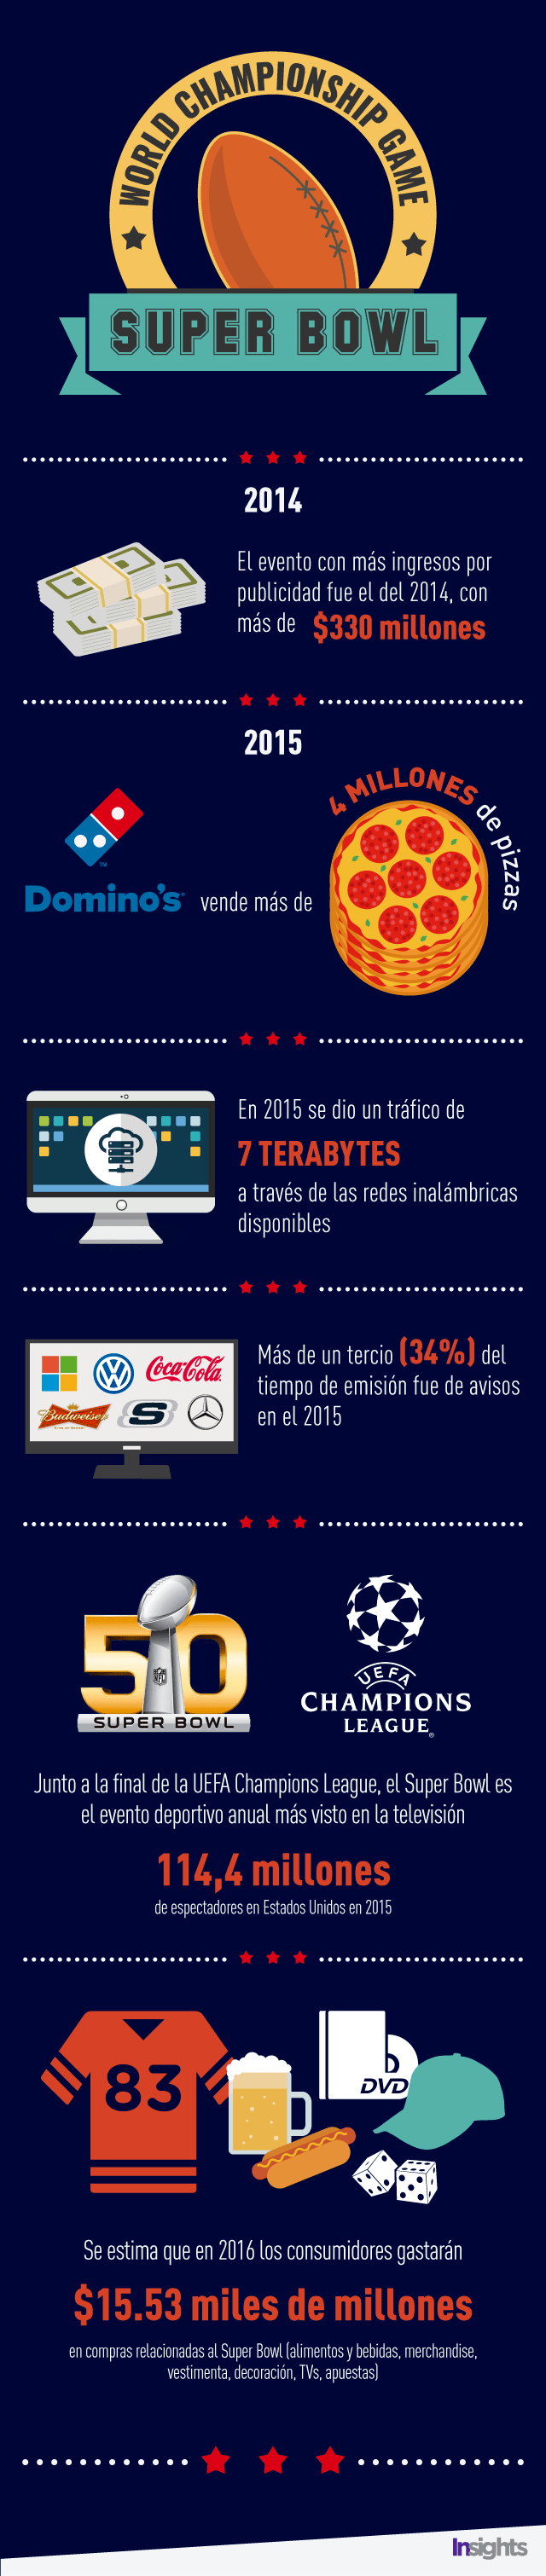 Datos curiosos sobre el Super Bowl.